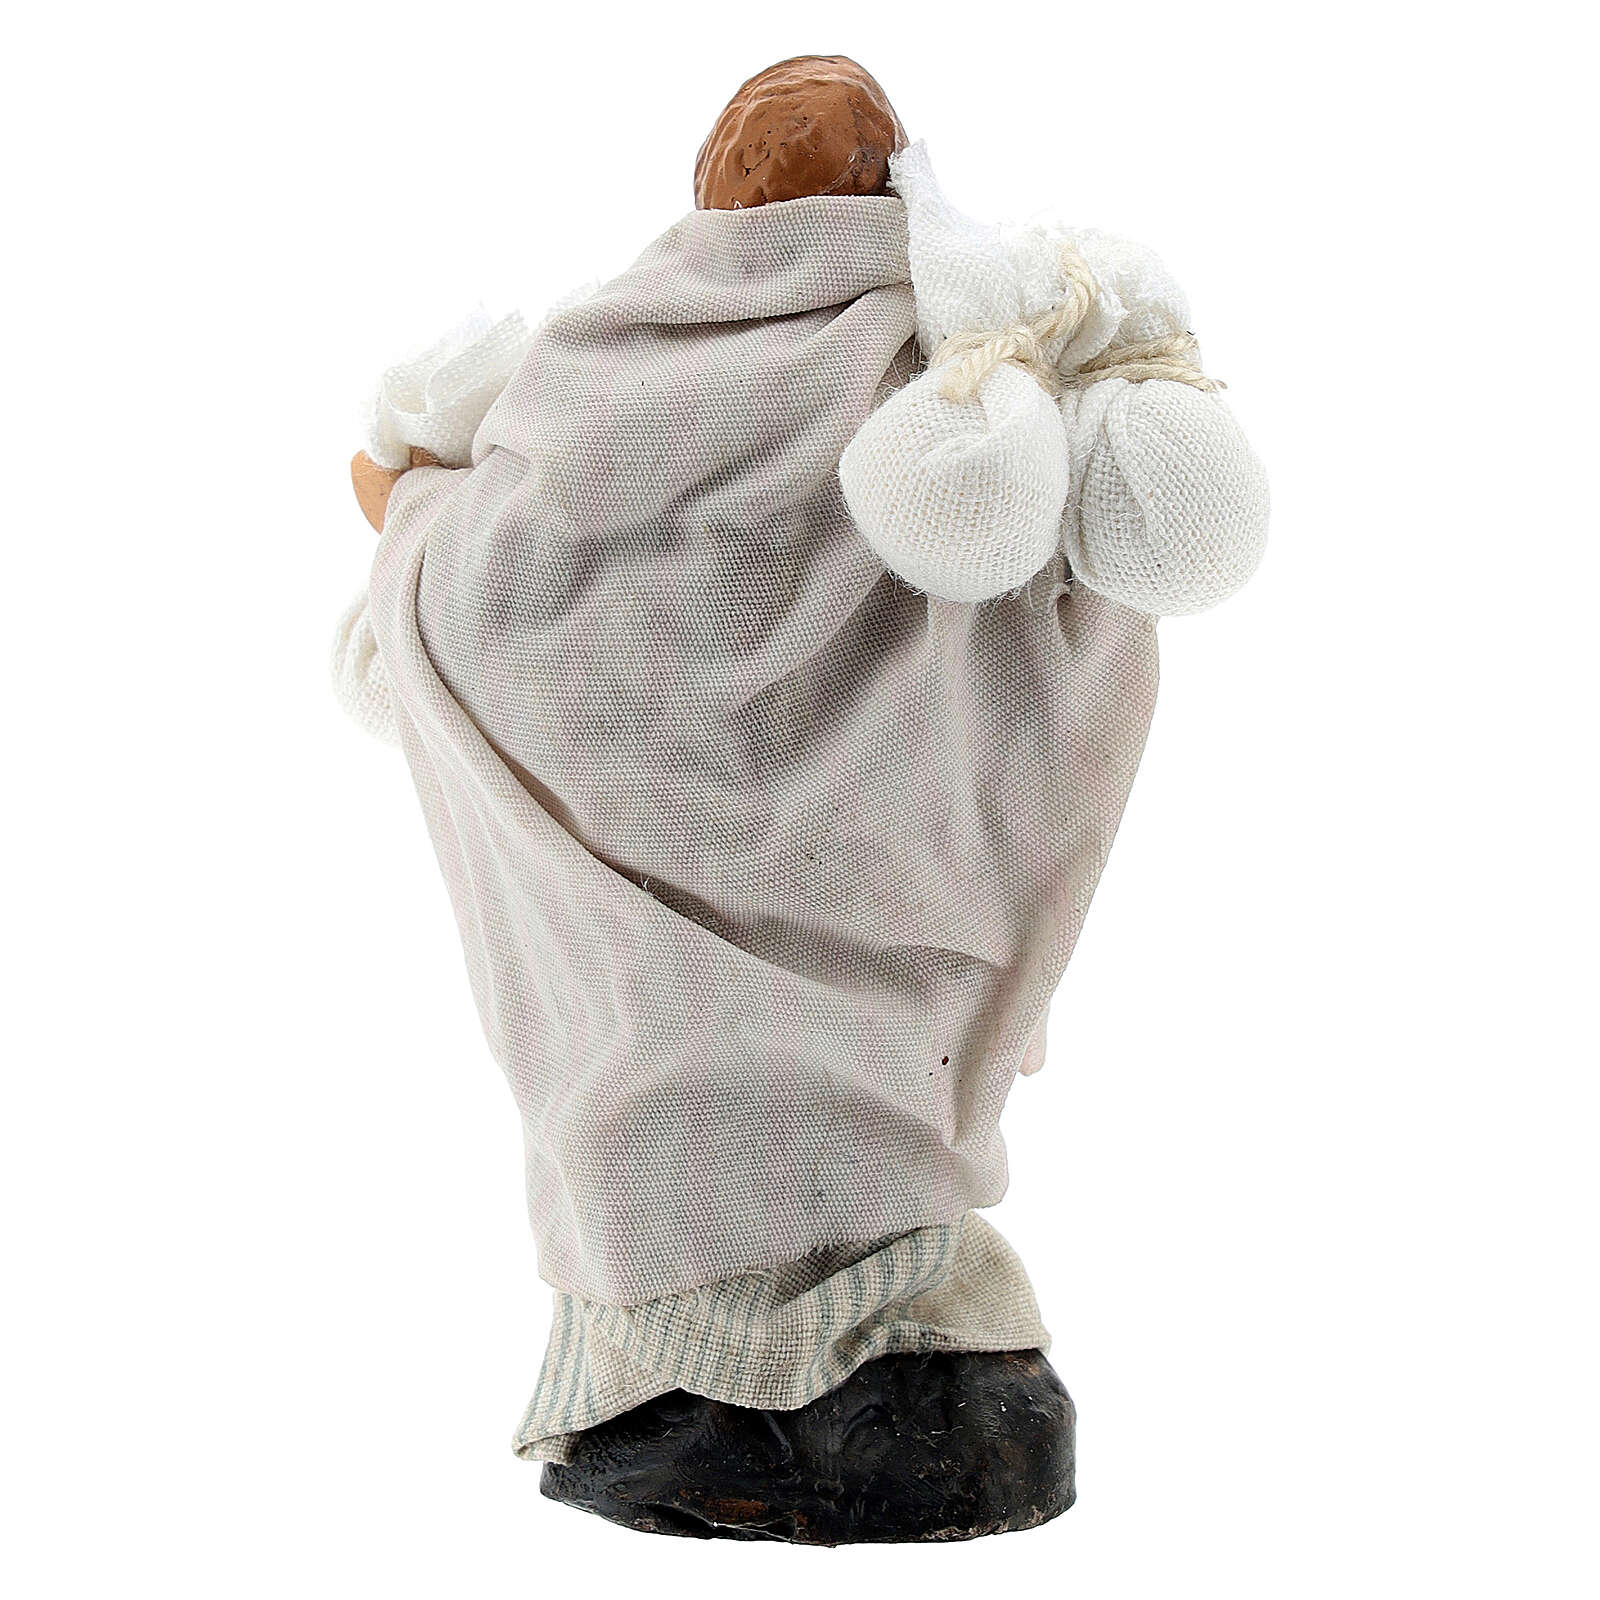 Boy carrying sacks over shoulder, 8 cm Neapolitan nativity terracotta 4